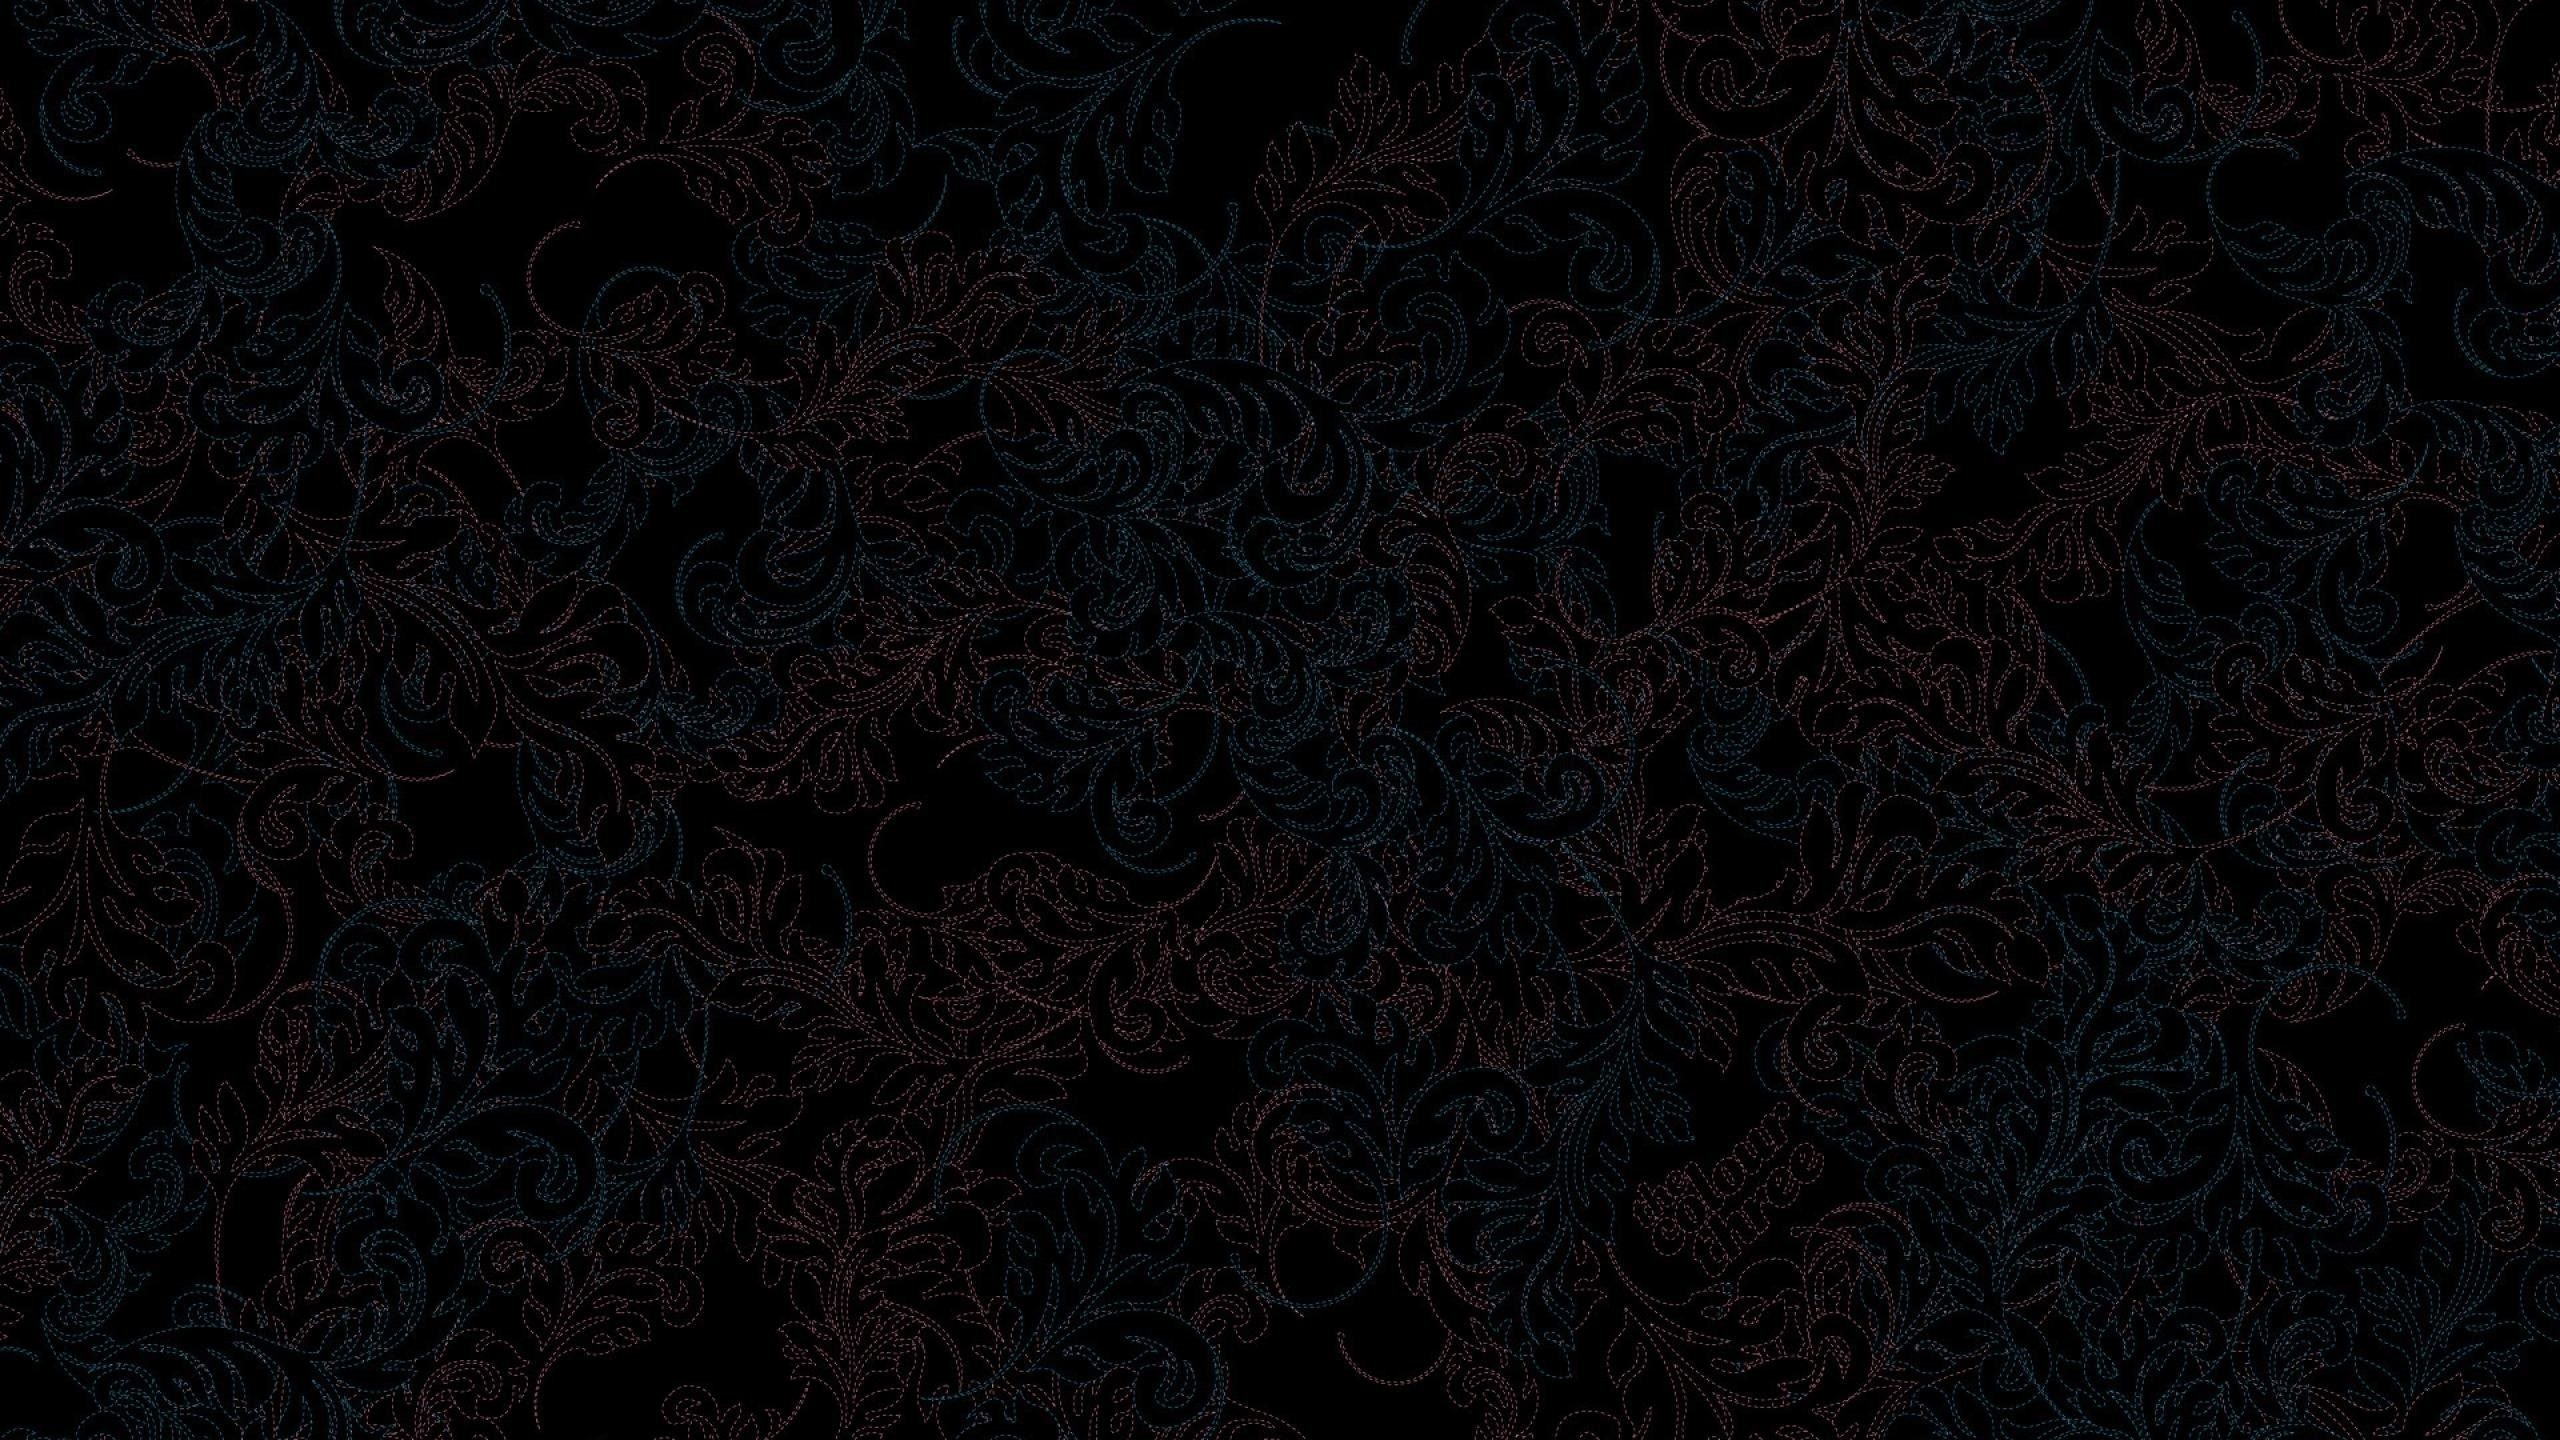 shiny black wallpaper (68+ images)